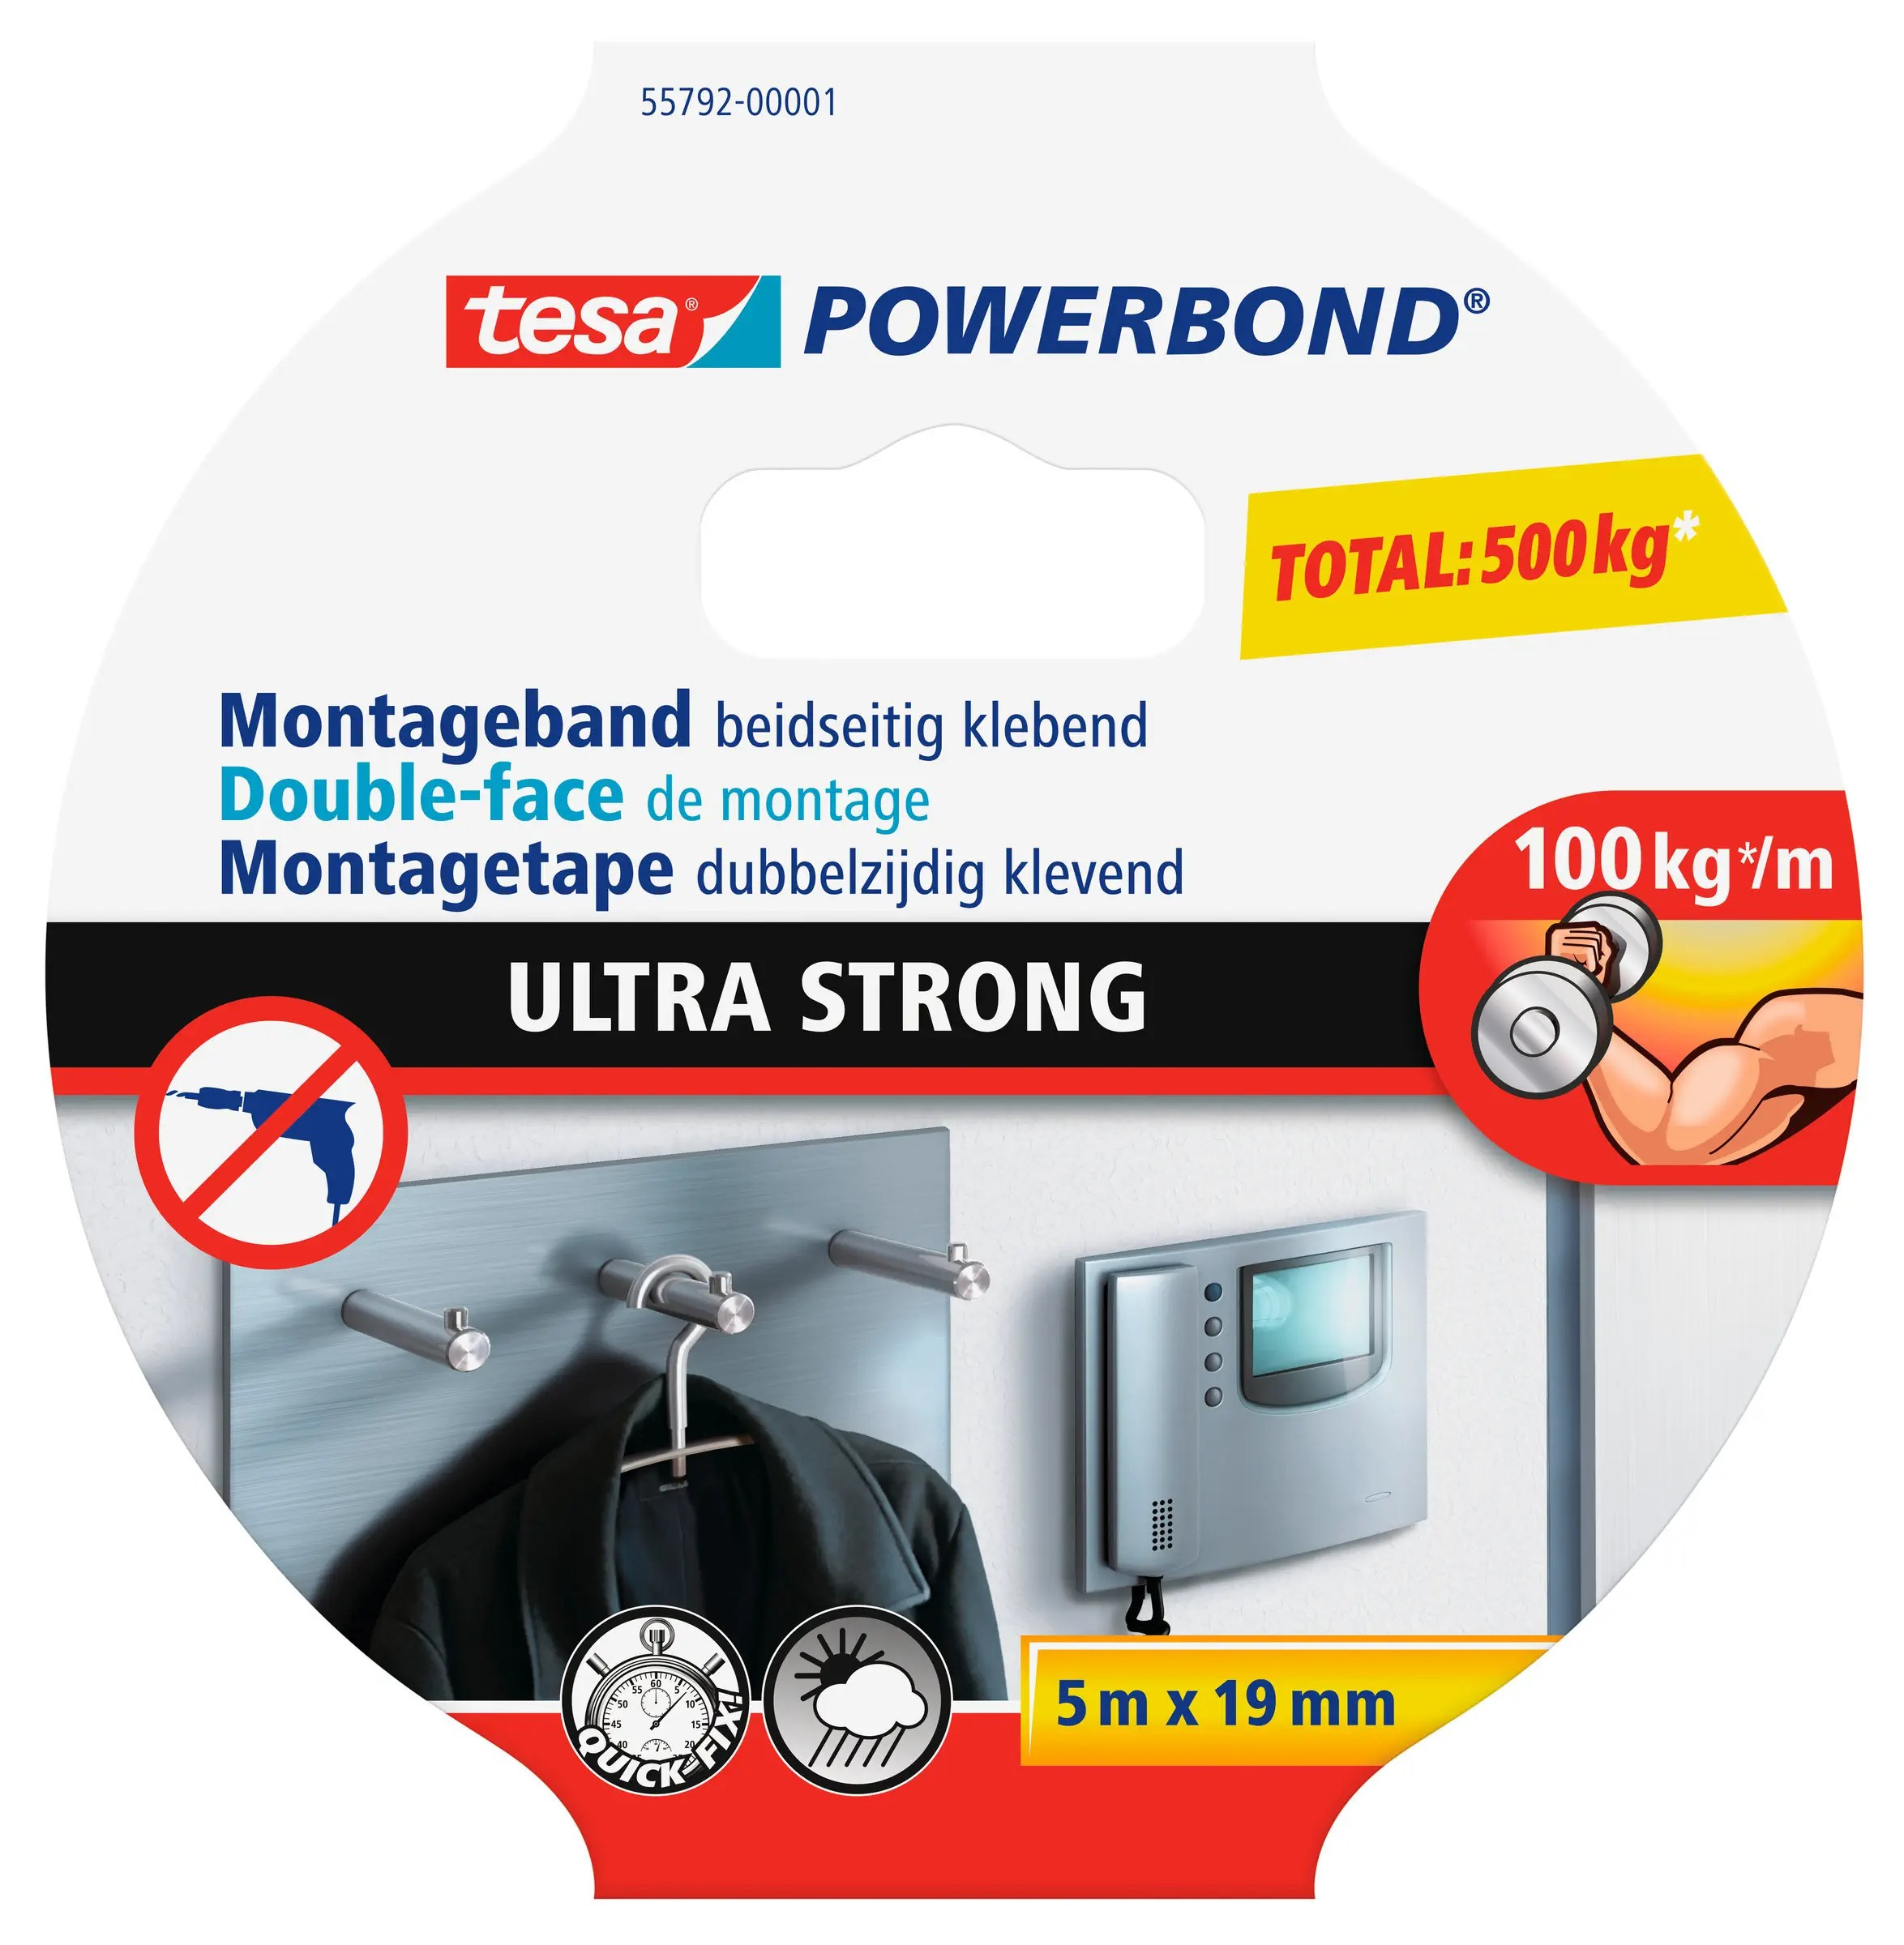 Tesa Powerbond Ultra Strong Tesa Powerbond Ultra Strong | Migros